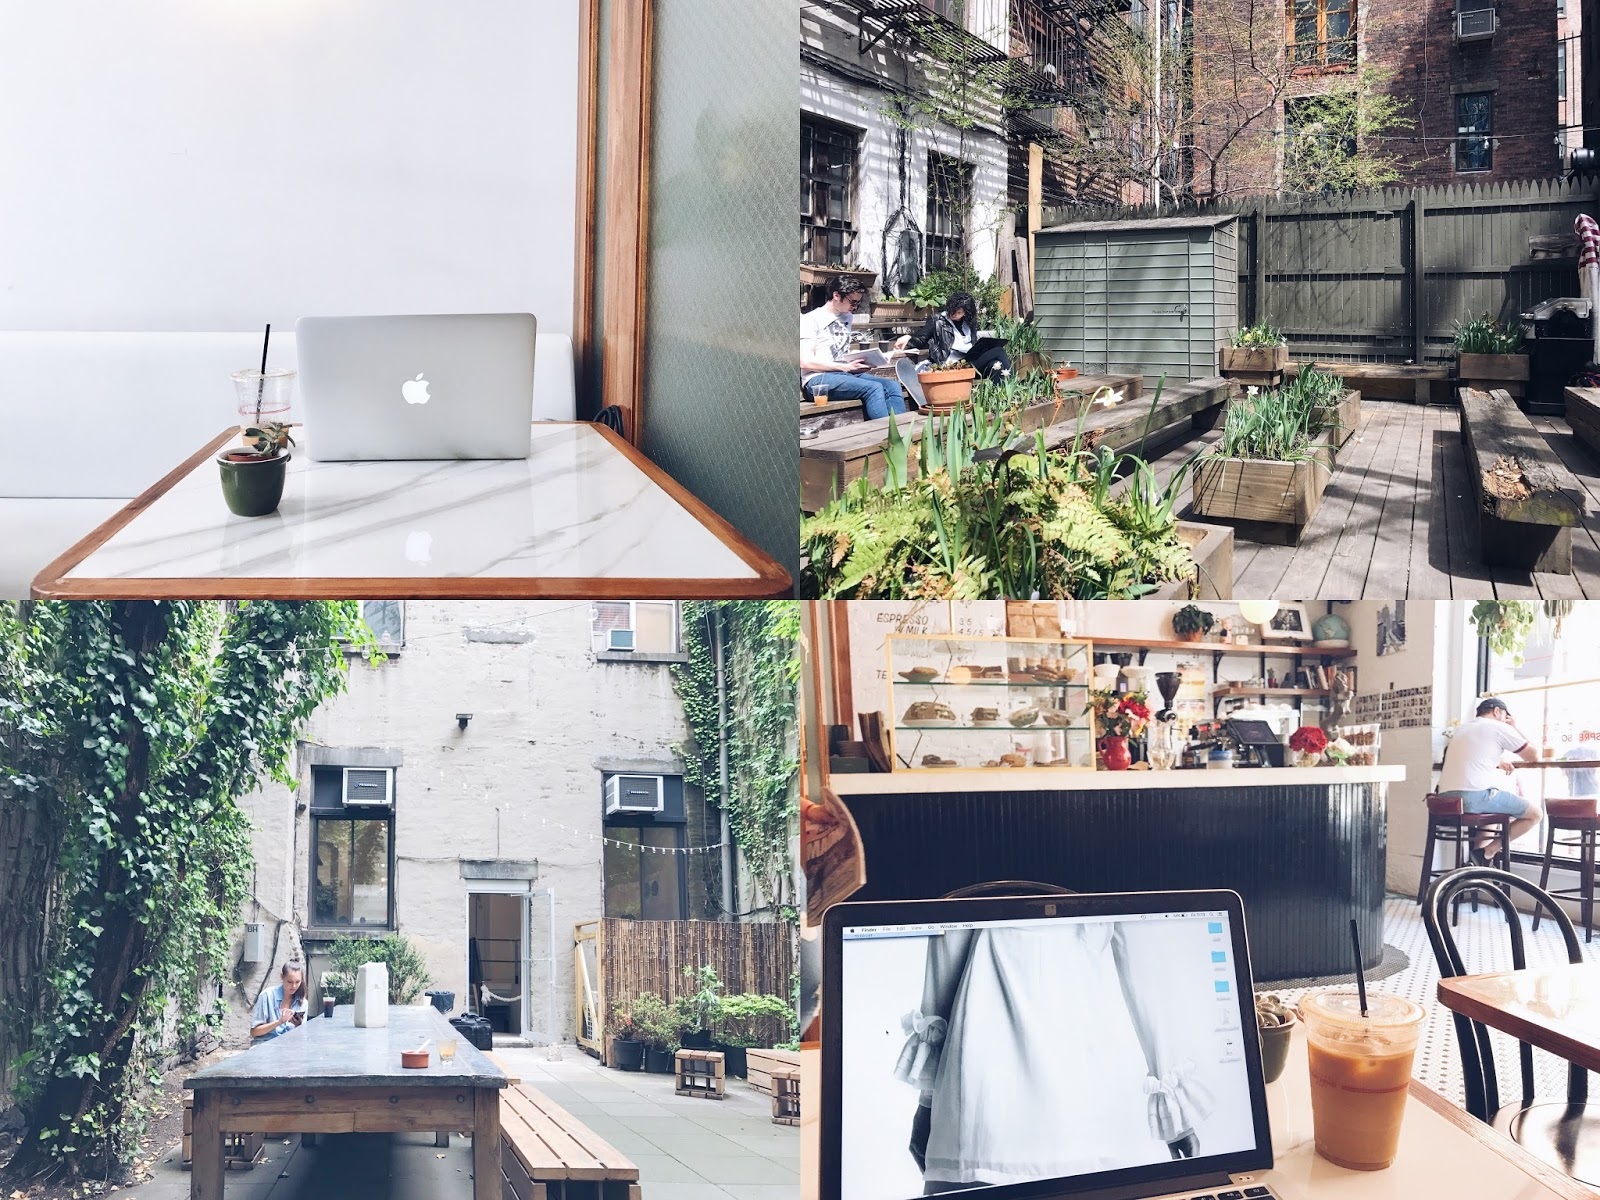 Work + wifi + coffee spots in NYC